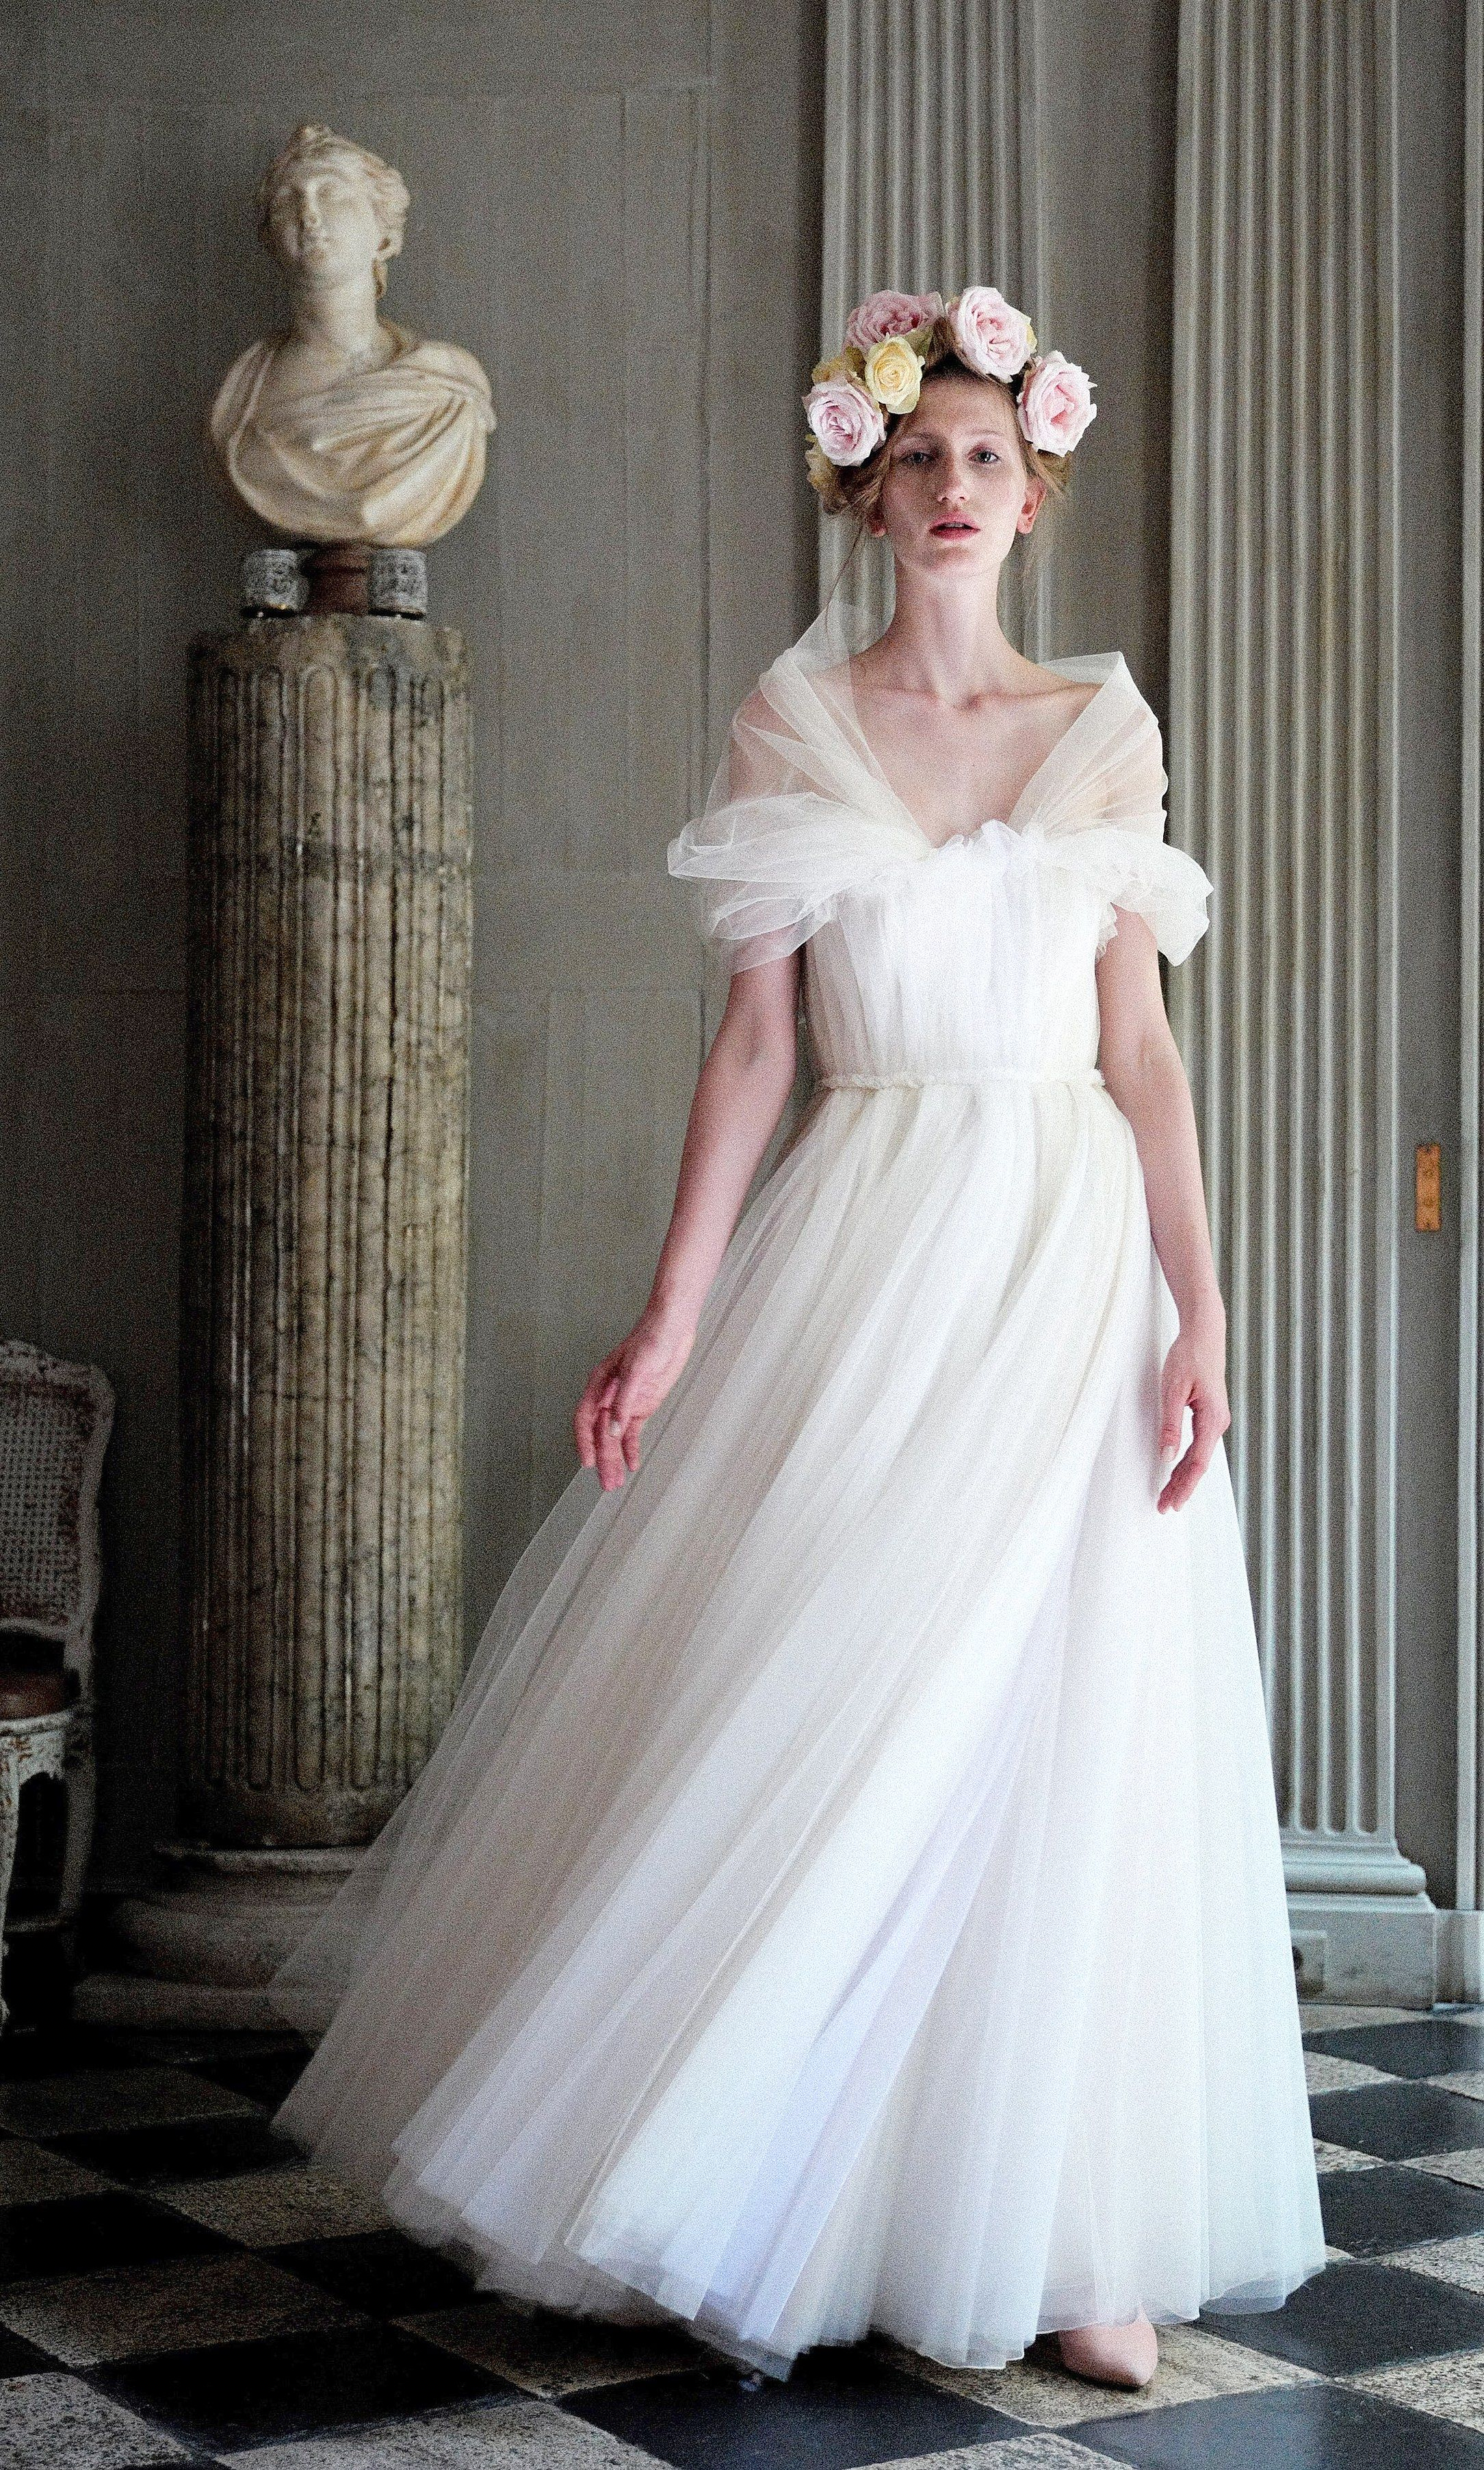 A Wedding Dress Designed By Luisa Beccaria From The Paris Fashion